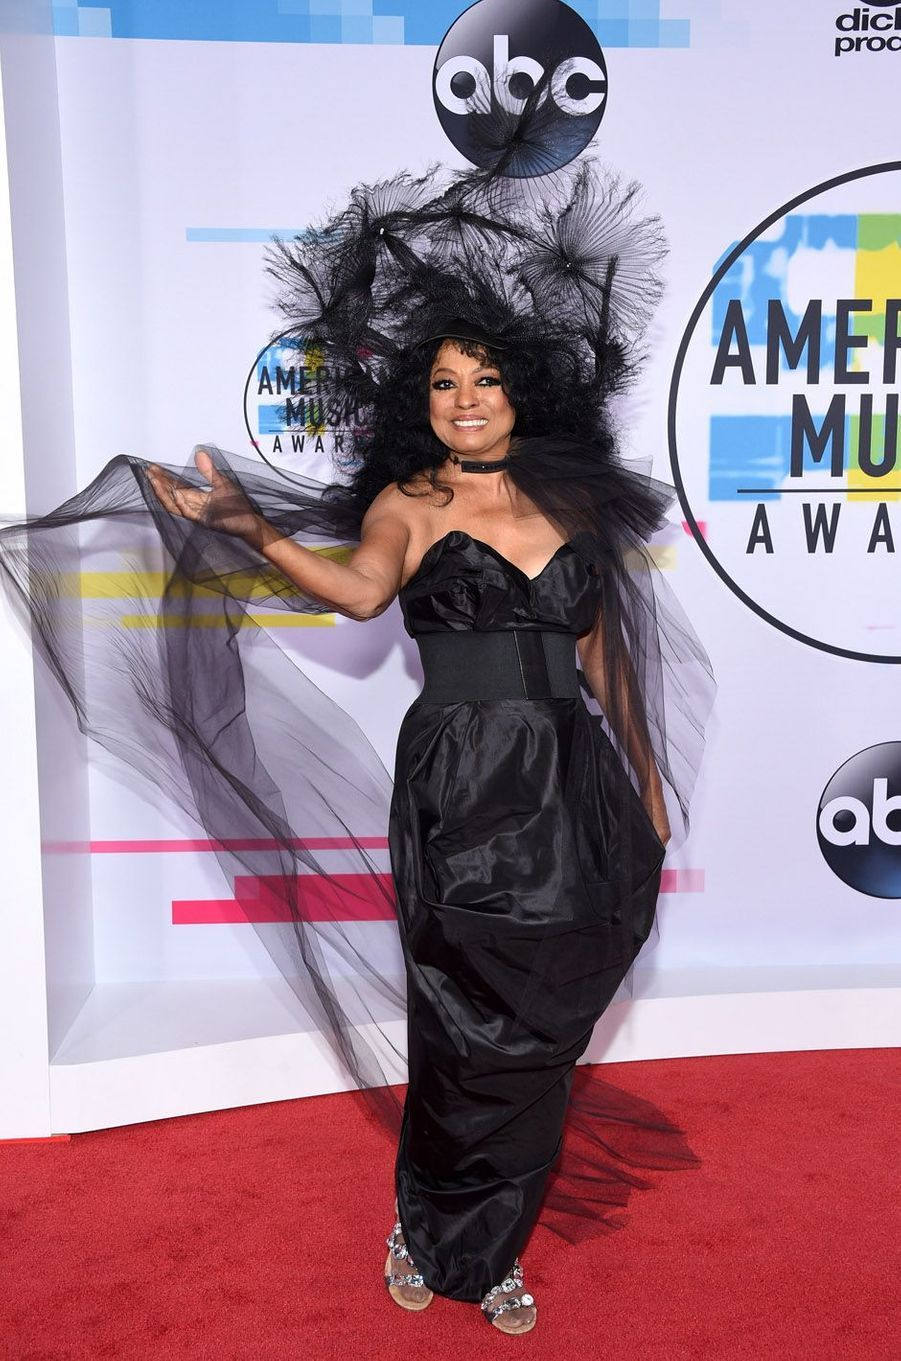 Diana Ross aux American Music Awards, le 19 novembre 2017 à Los Angeles.